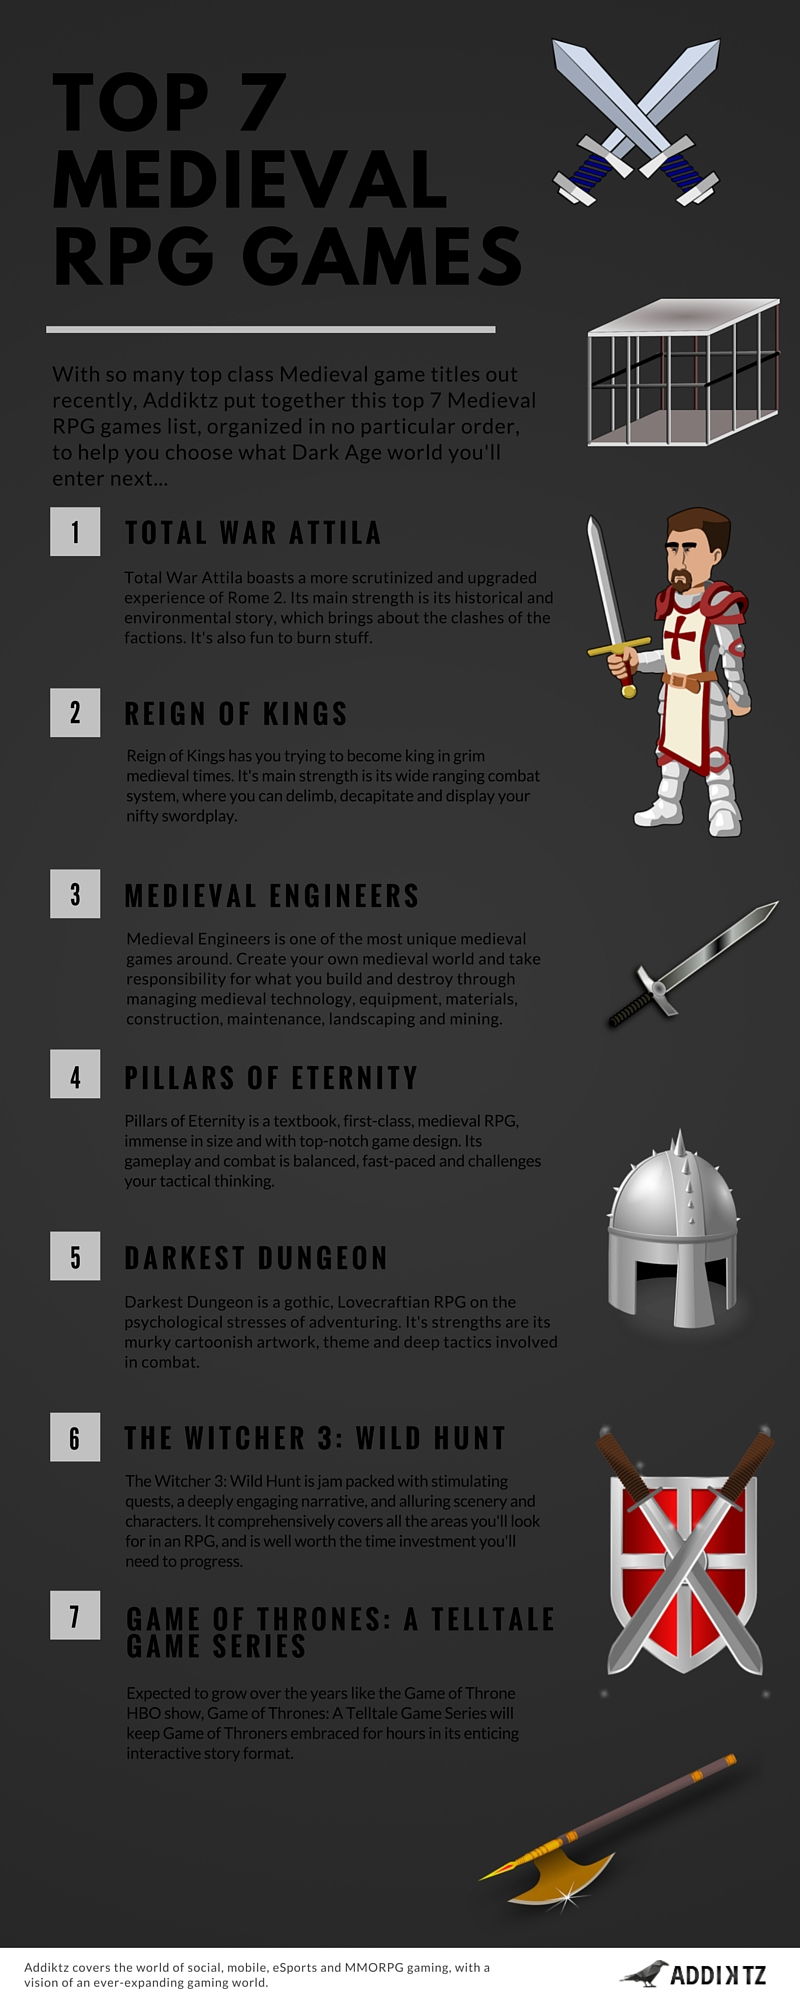 Top 7 Medieval RPG Games infographic